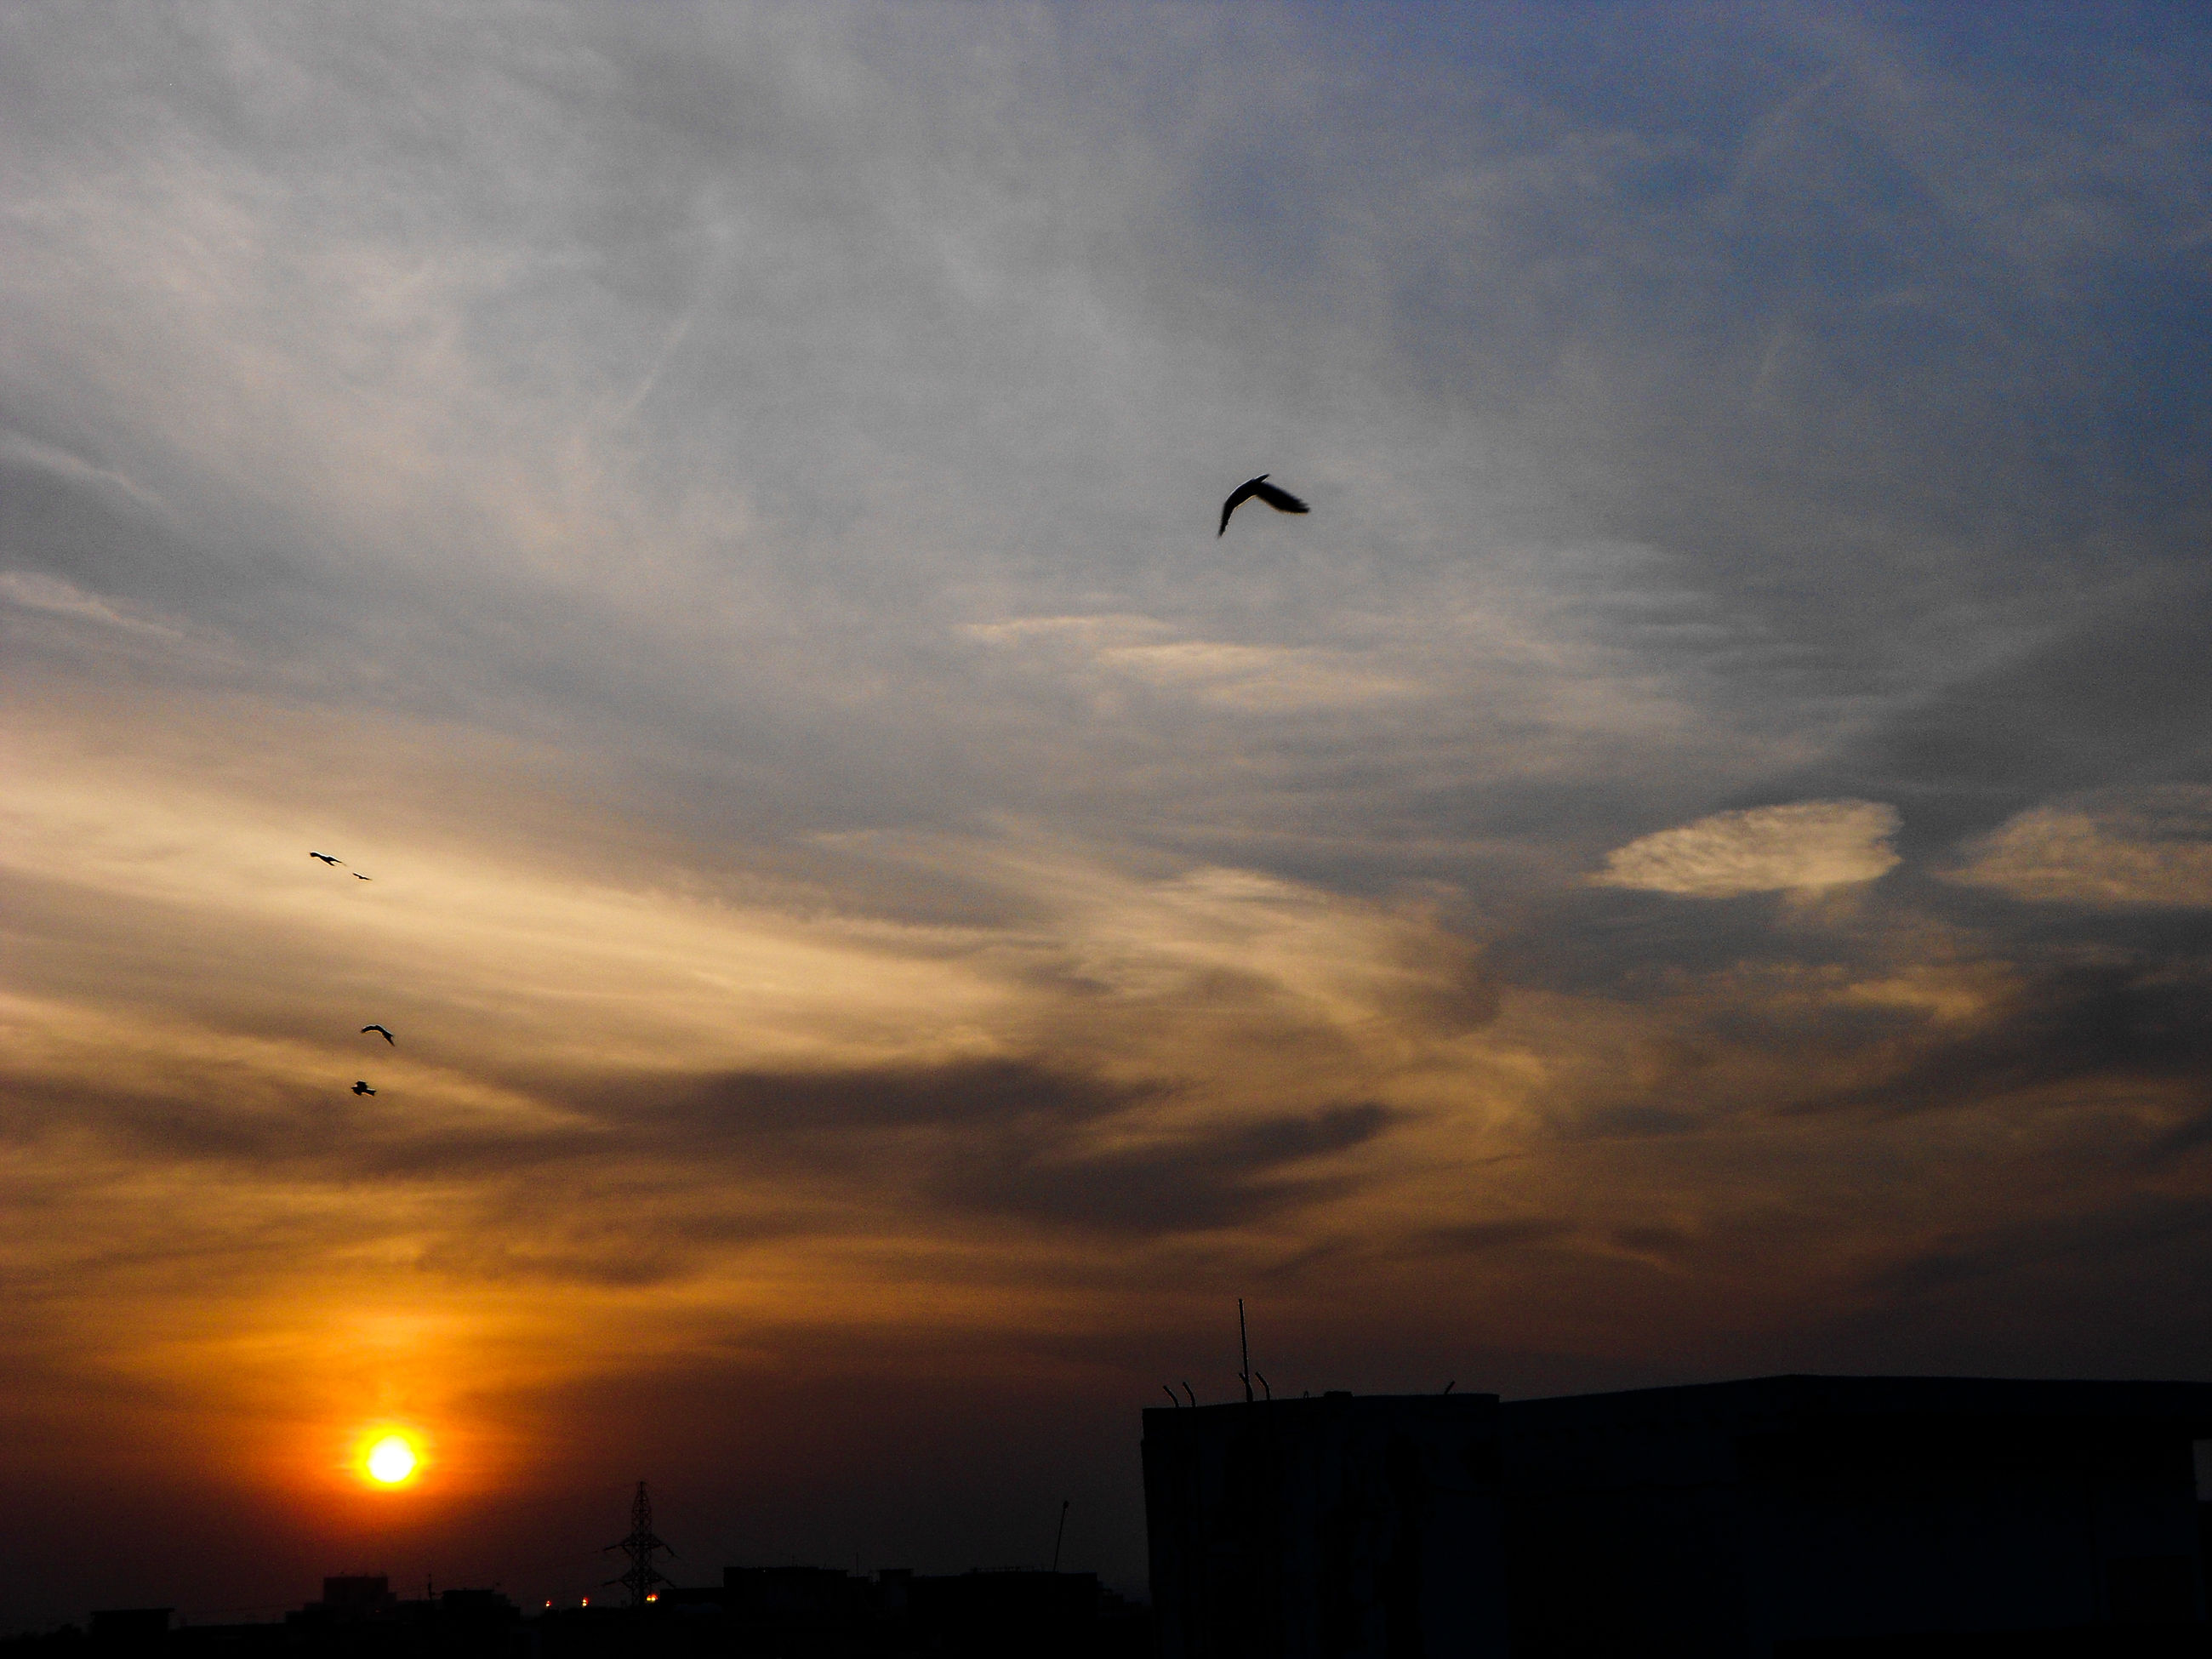 sky, cloud - sky, flying, sunset, silhouette, bird, animal themes, low angle view, no people, outdoors, building exterior, nature, architecture, scenics, beauty in nature, animals in the wild, day